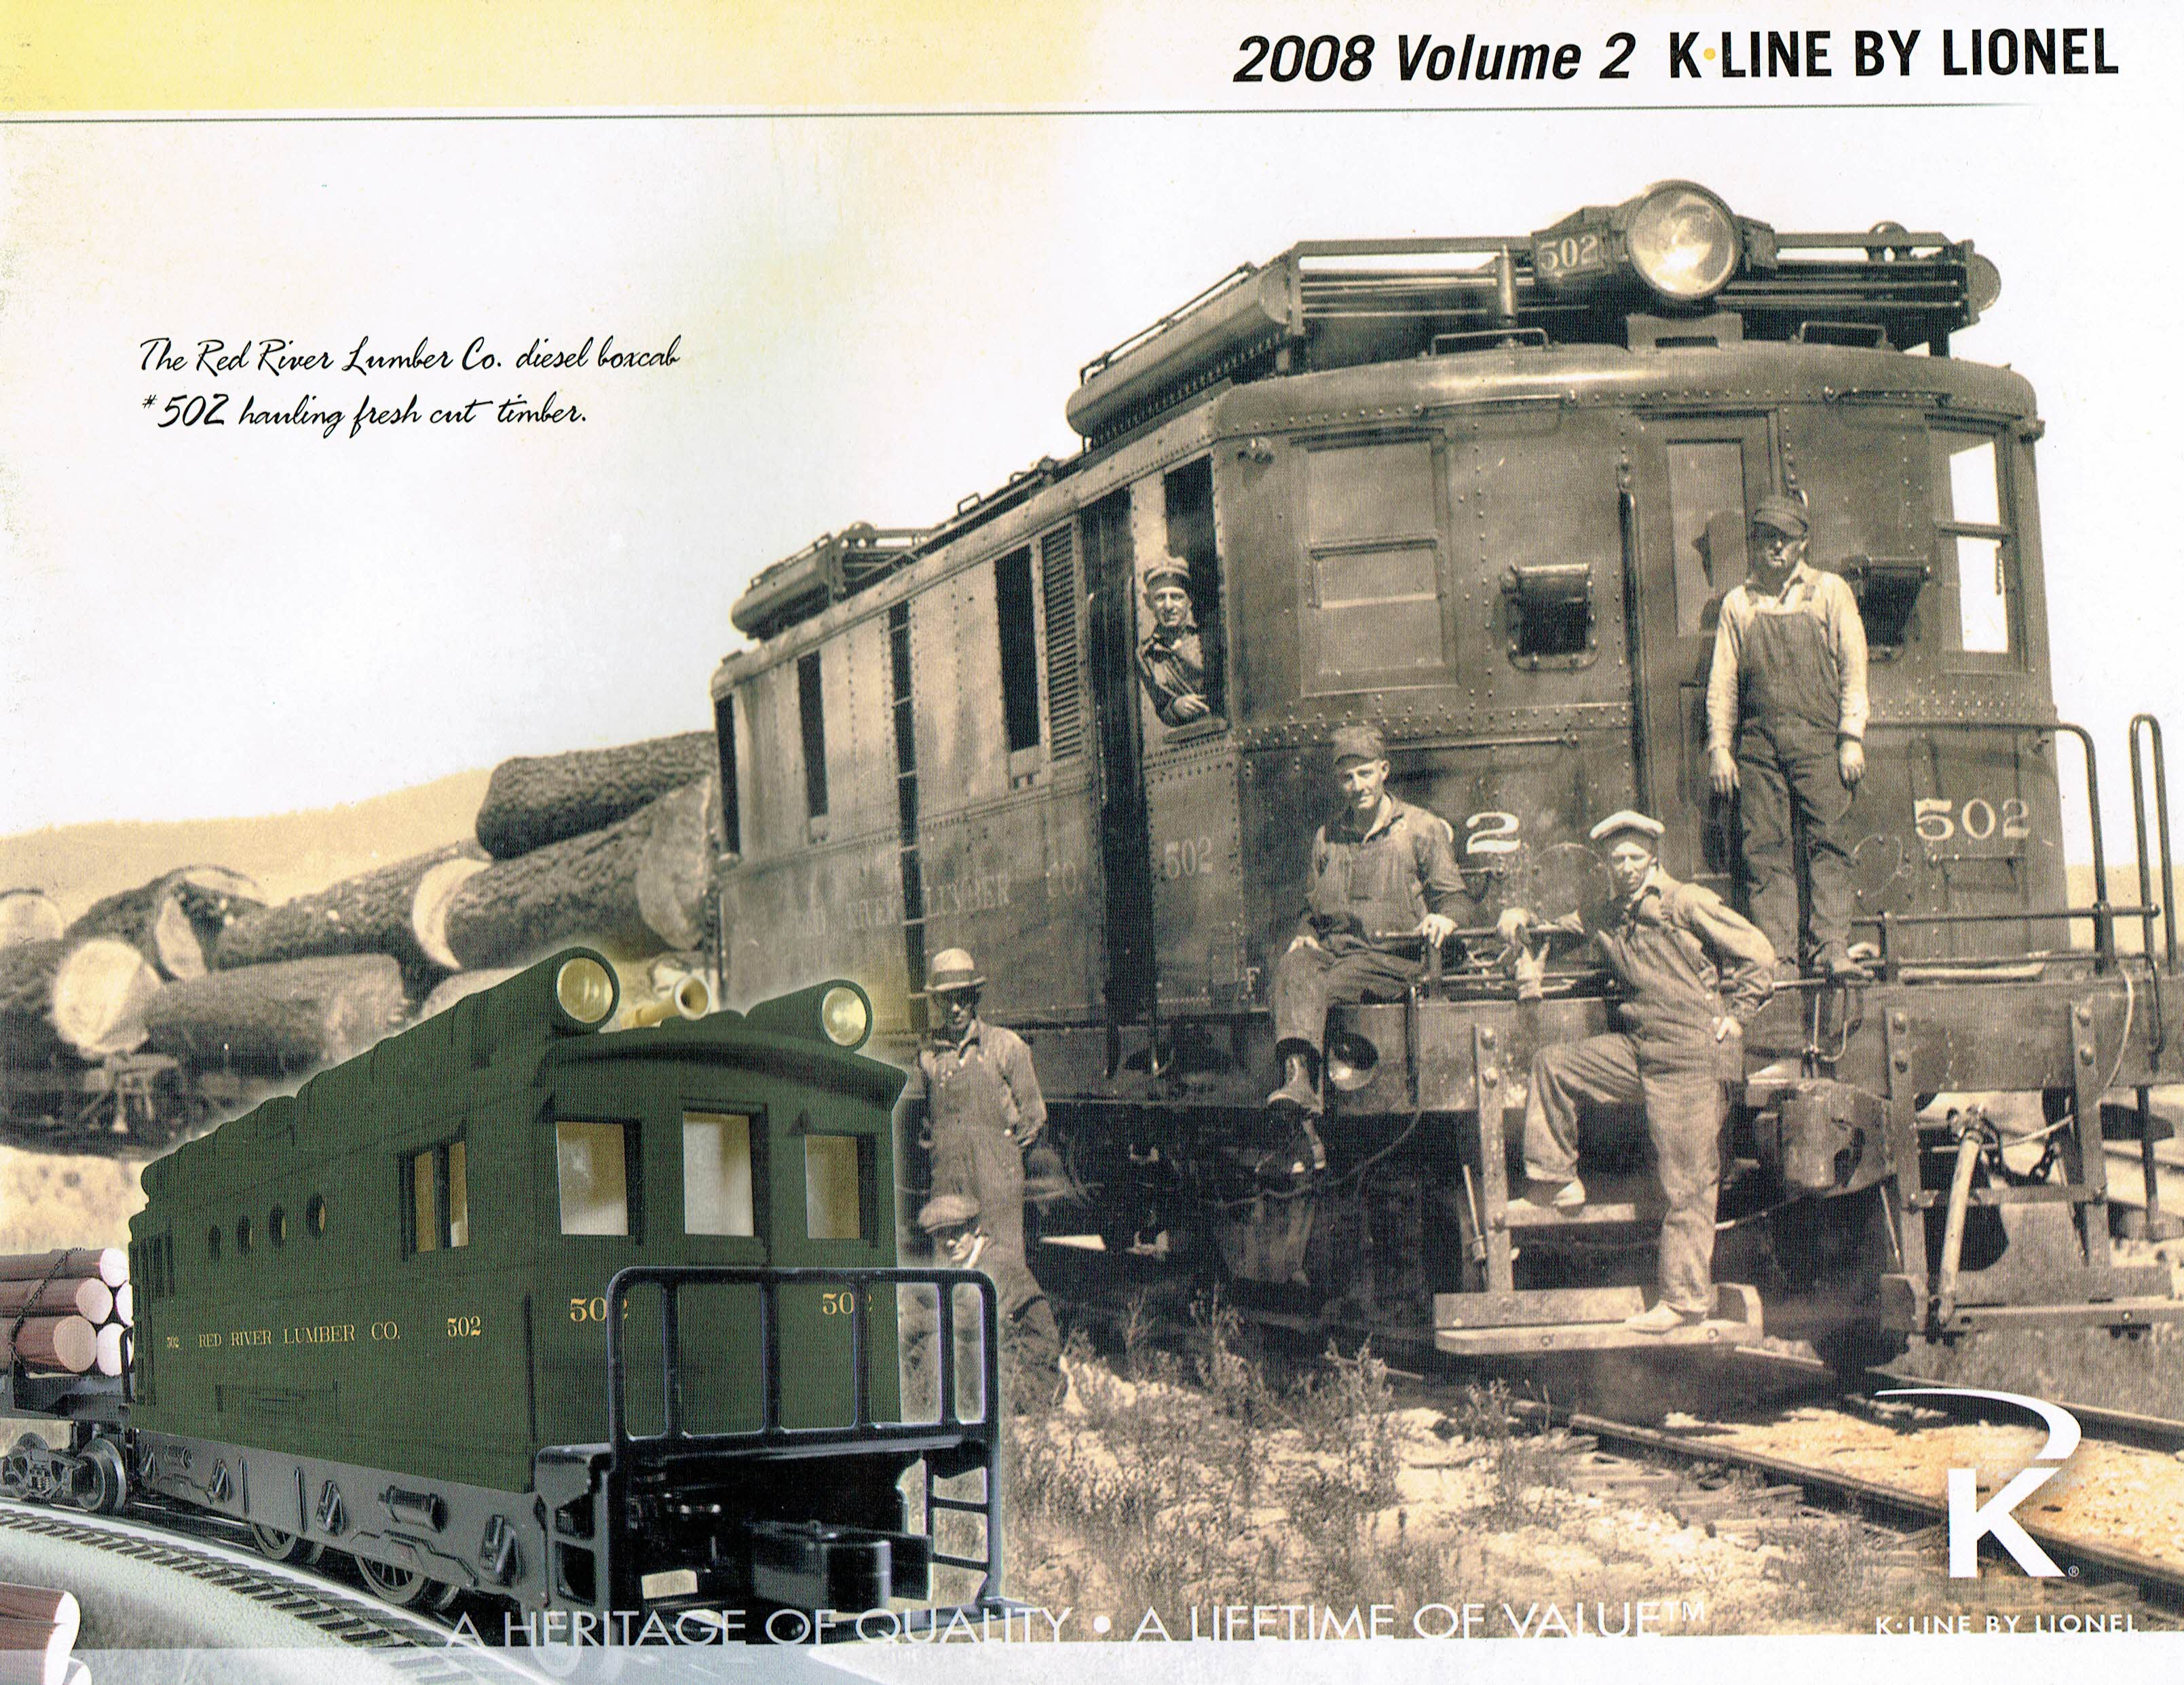 K-Line by Lionel 2008 Volume 2 Catalog image